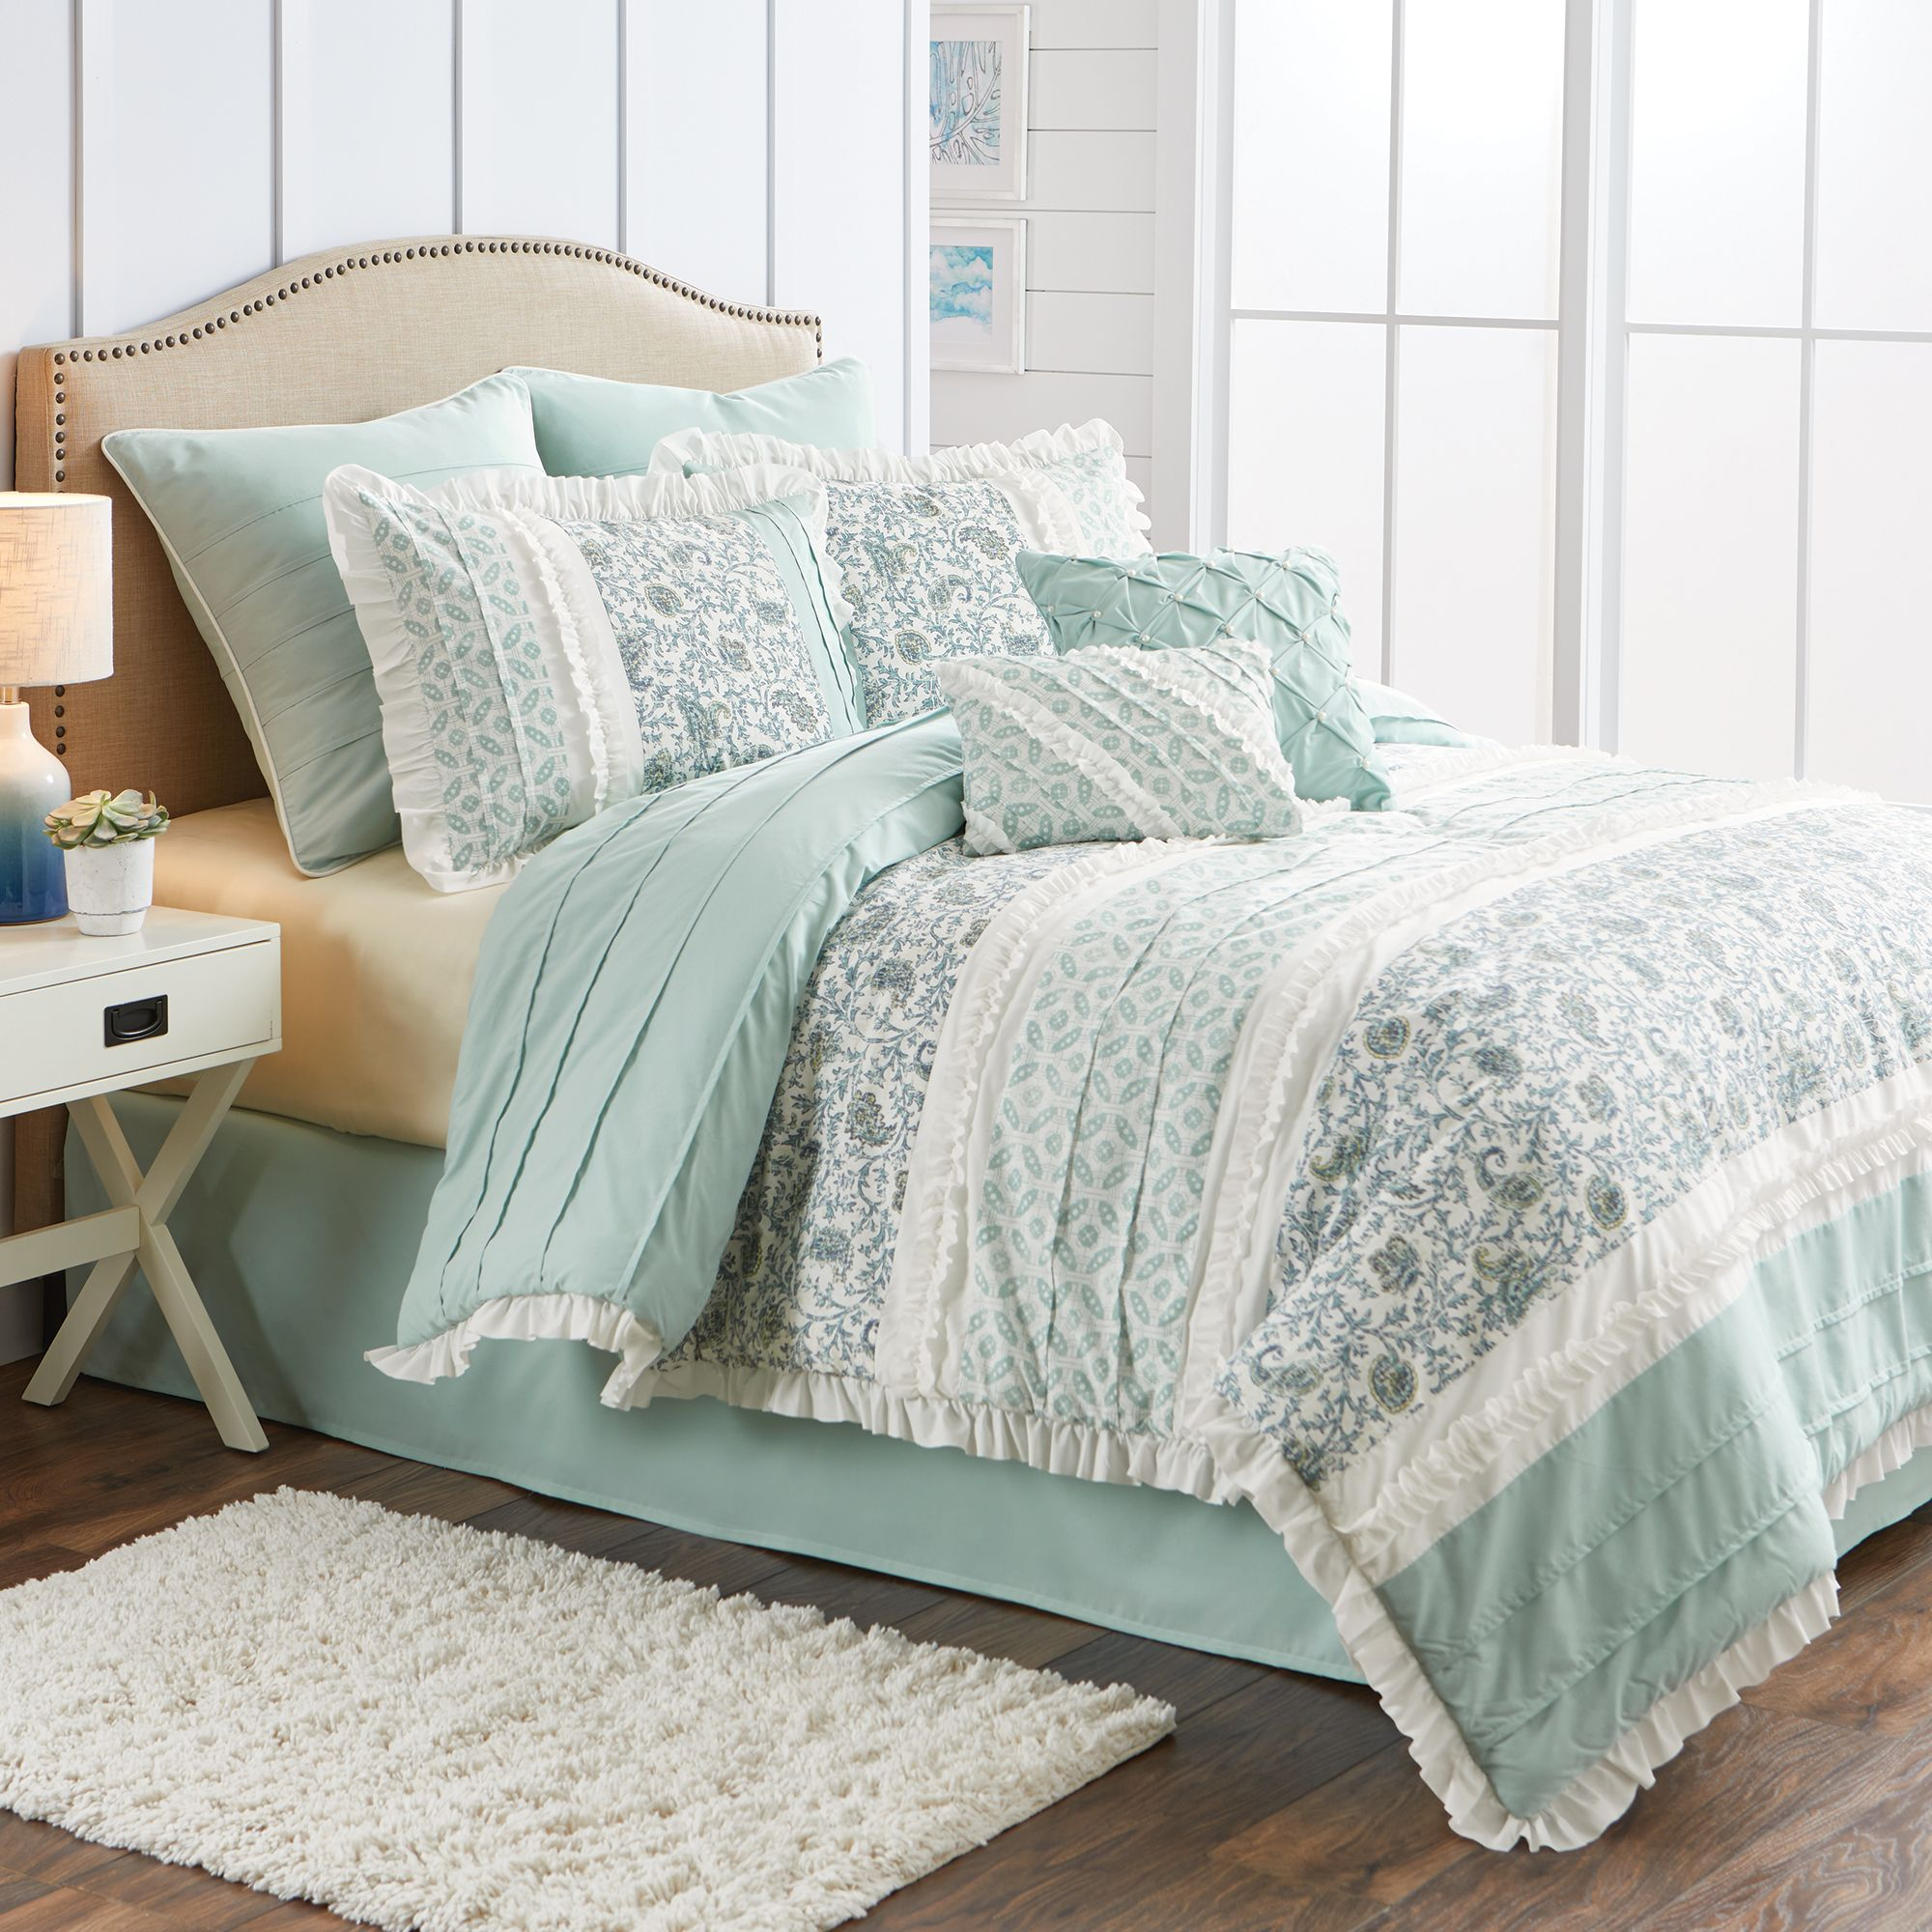 Shop By Brand In 2020 Floral Comforter Sets Comforter Sets Floral Comforter